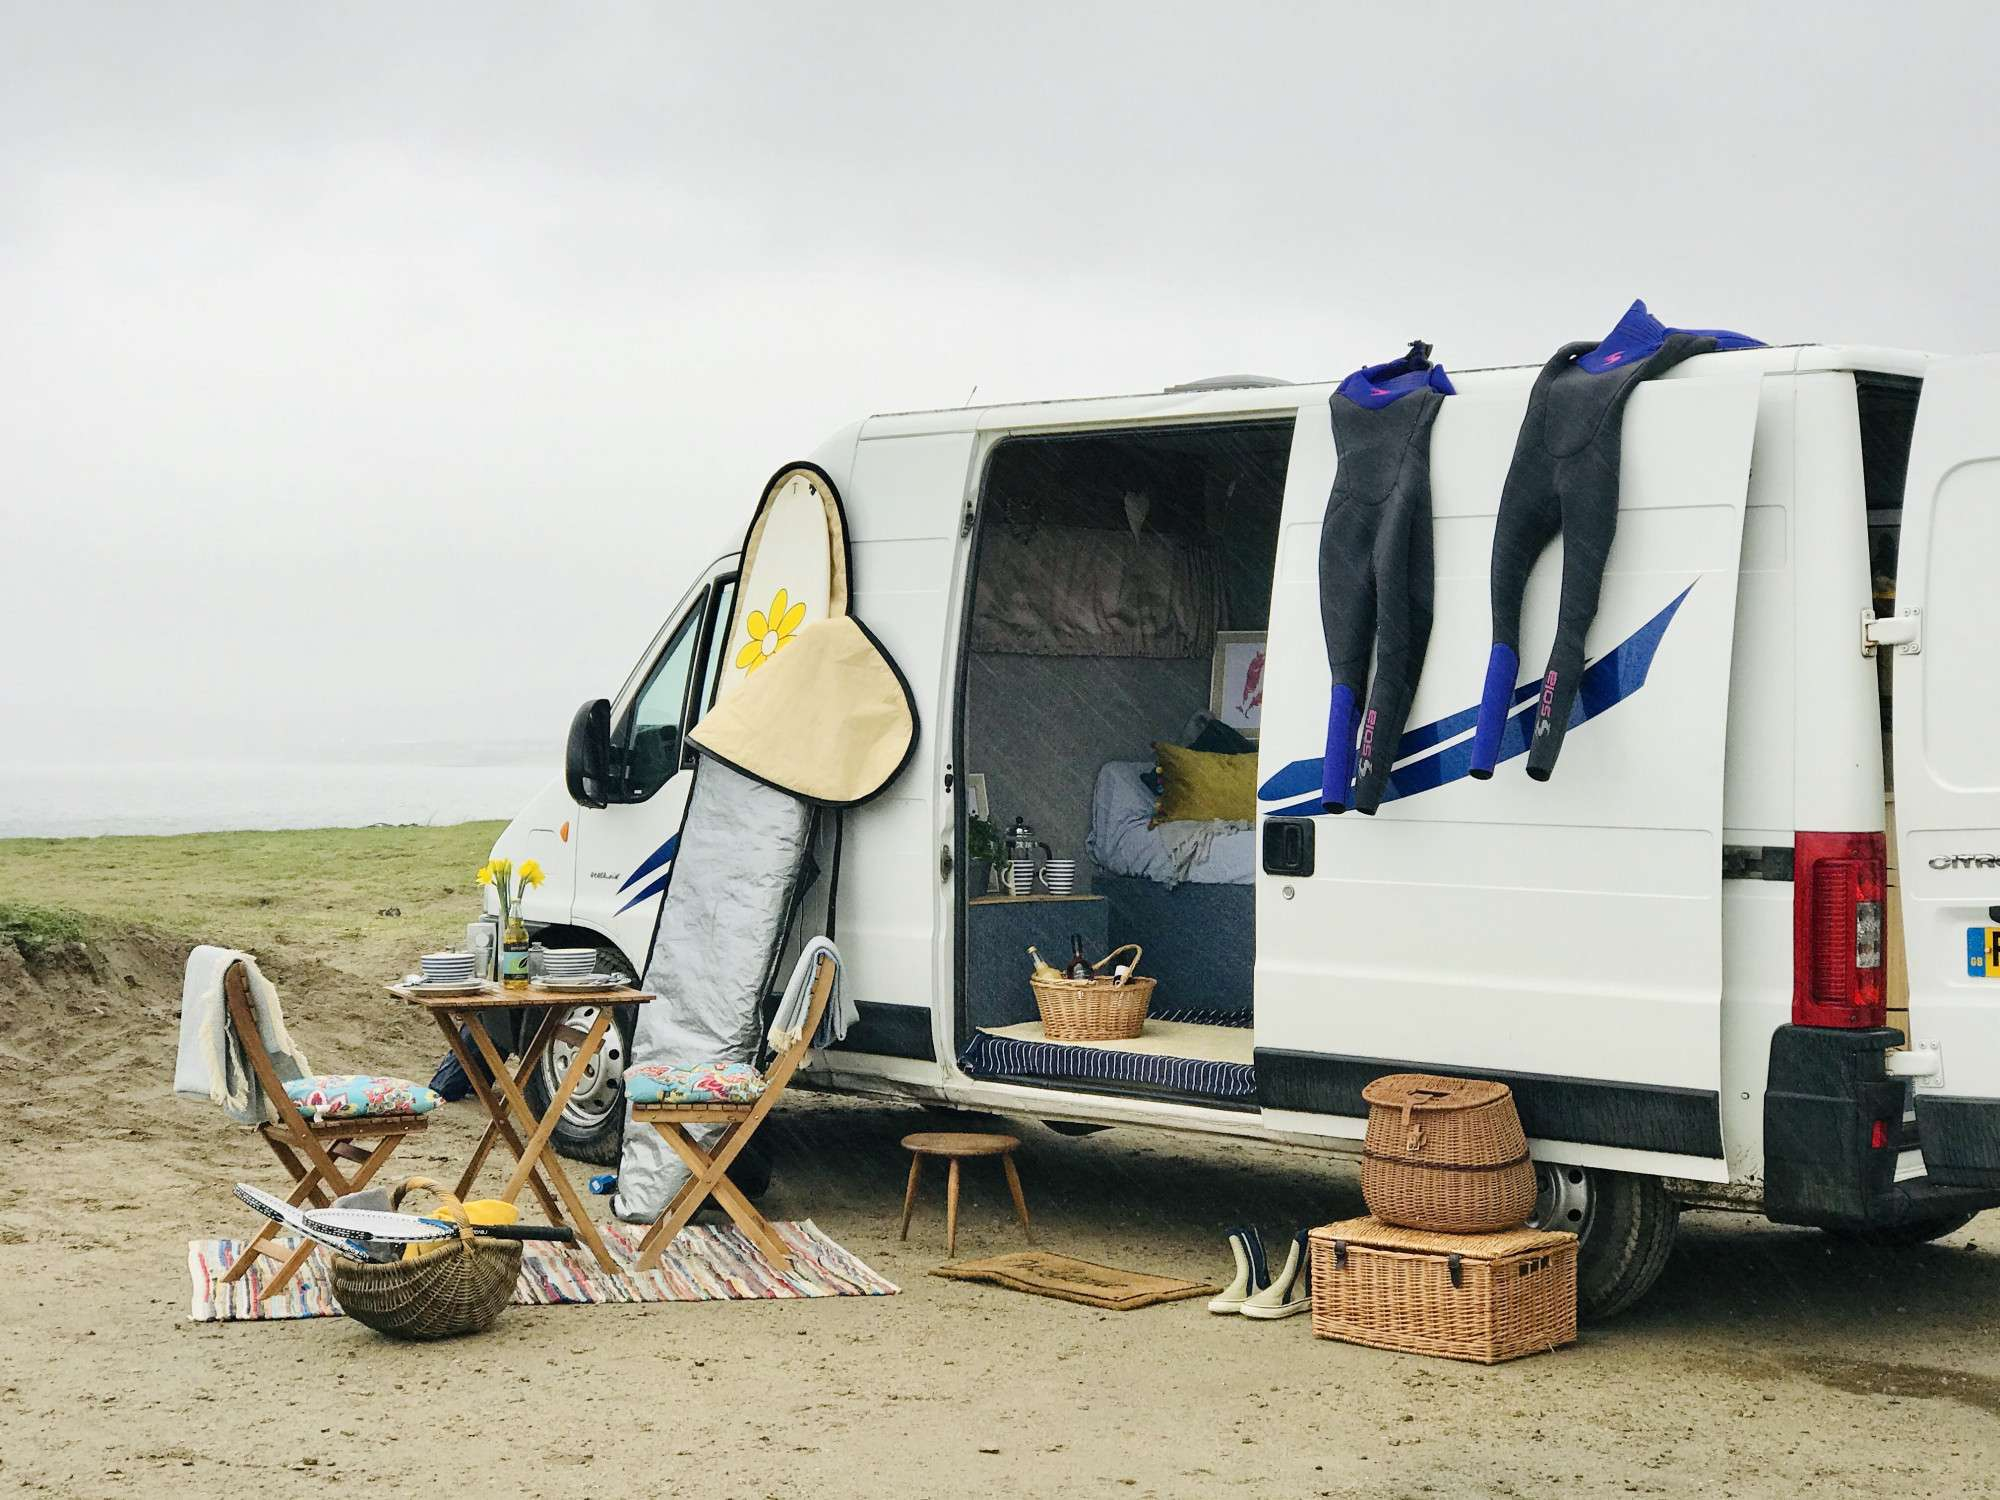 A Citroen Campervan called Yancy and for hire in penzance, Cornwall